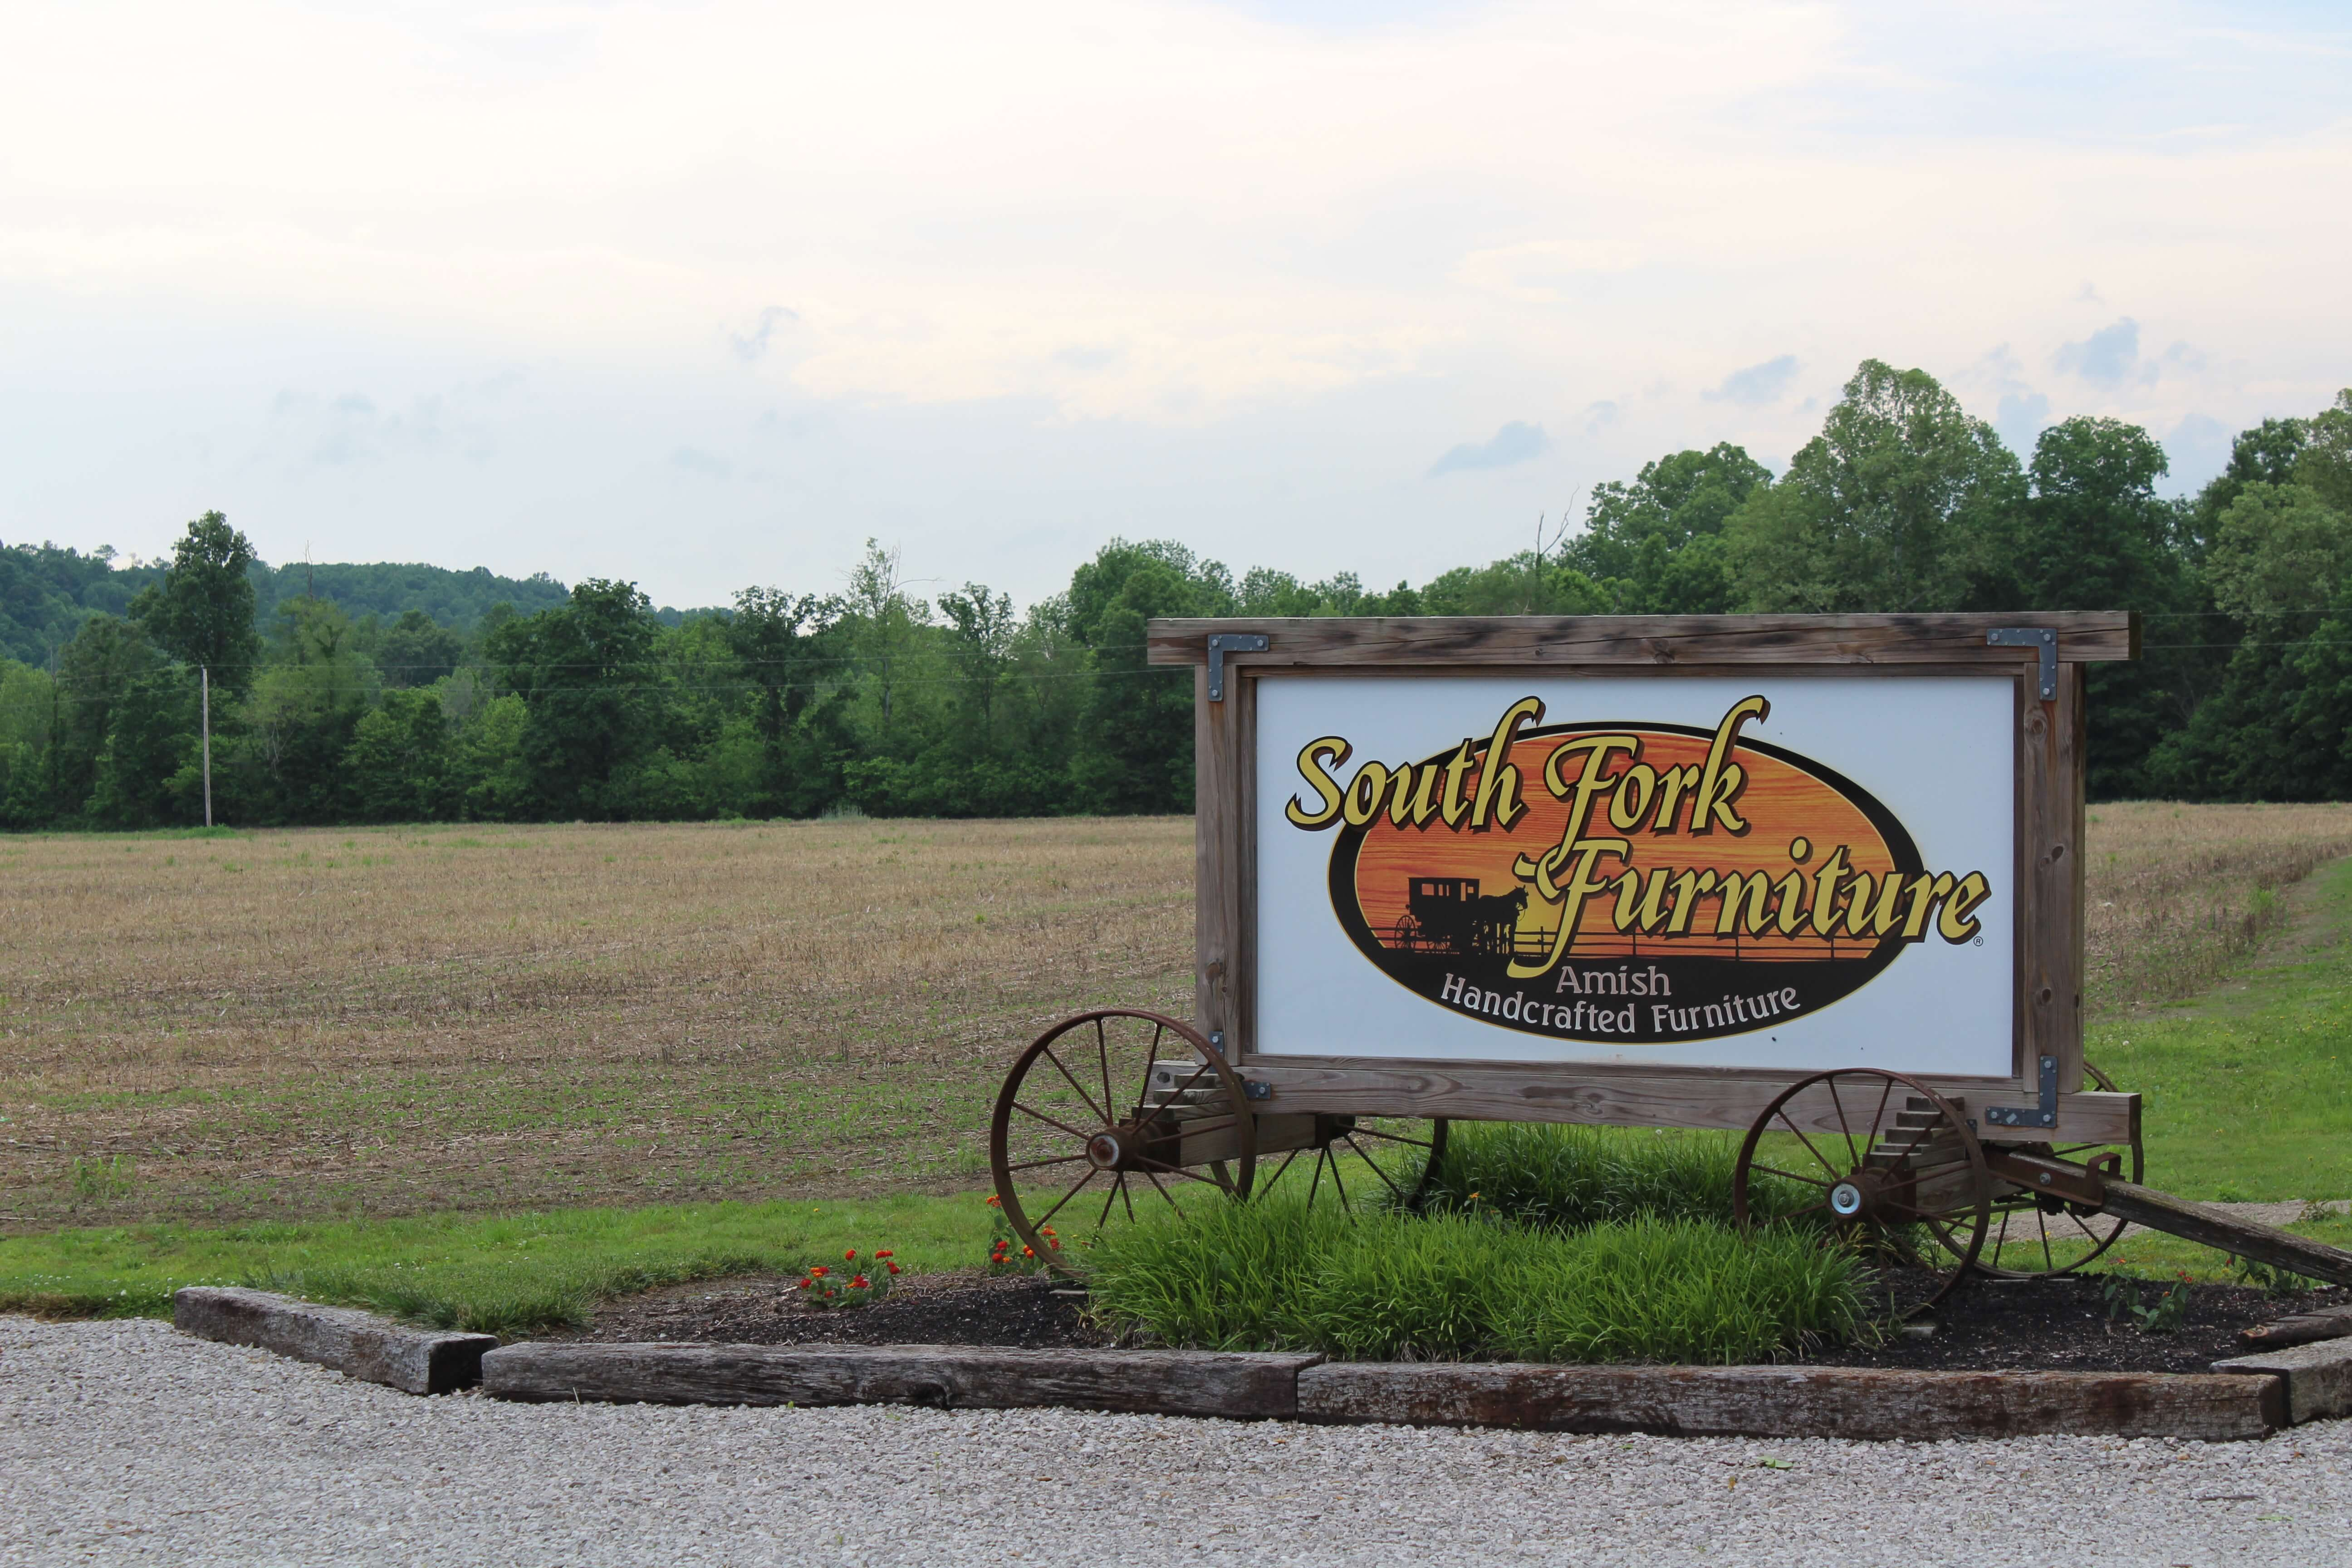 South Fork Furniture, Liberty, KY